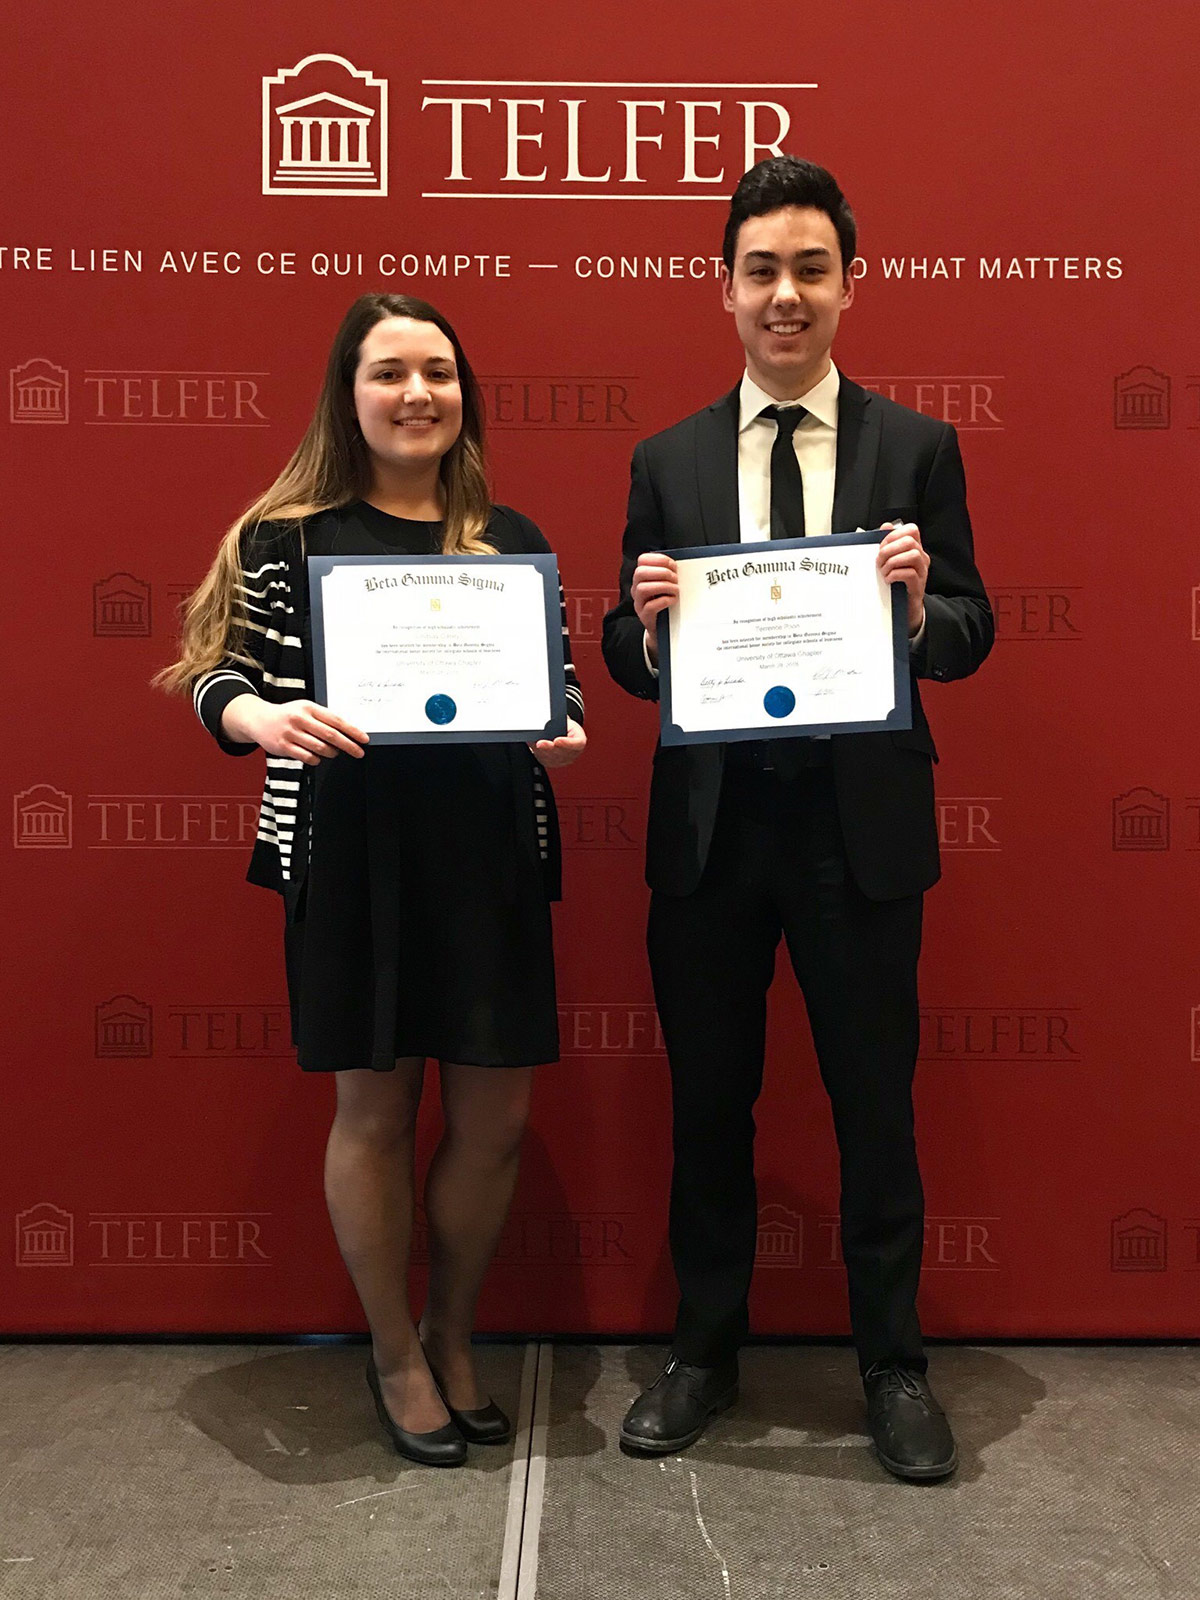 Congratulations to Lindsay and Terrence for being awarded entrance to the Beta Gamma Sigma Society